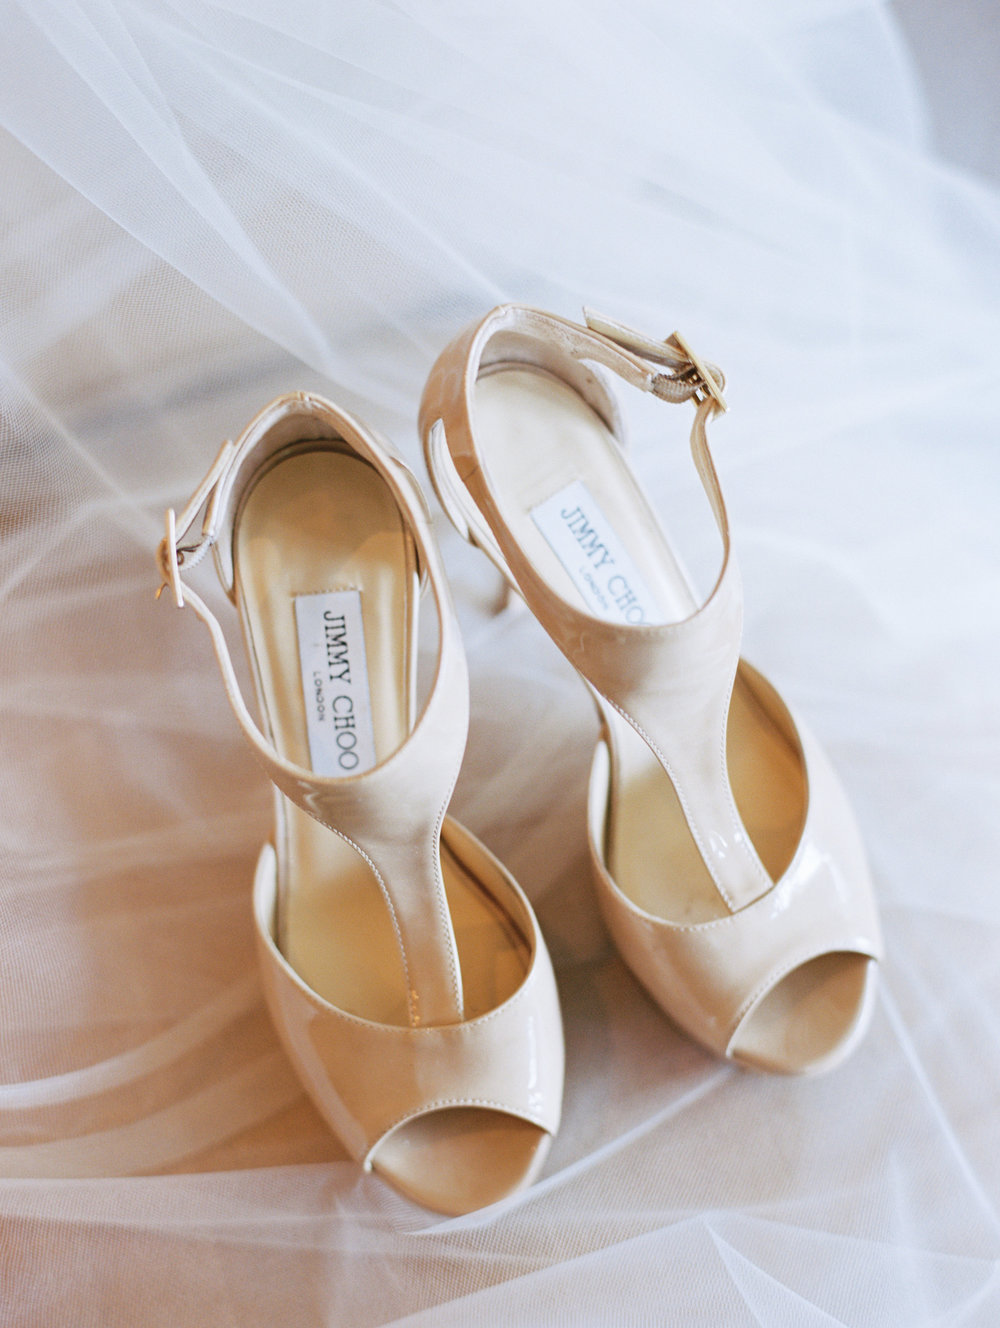 Shoe Details - Kiawah Island, South Carolina - Fall Wedding - Julian Leaver Events